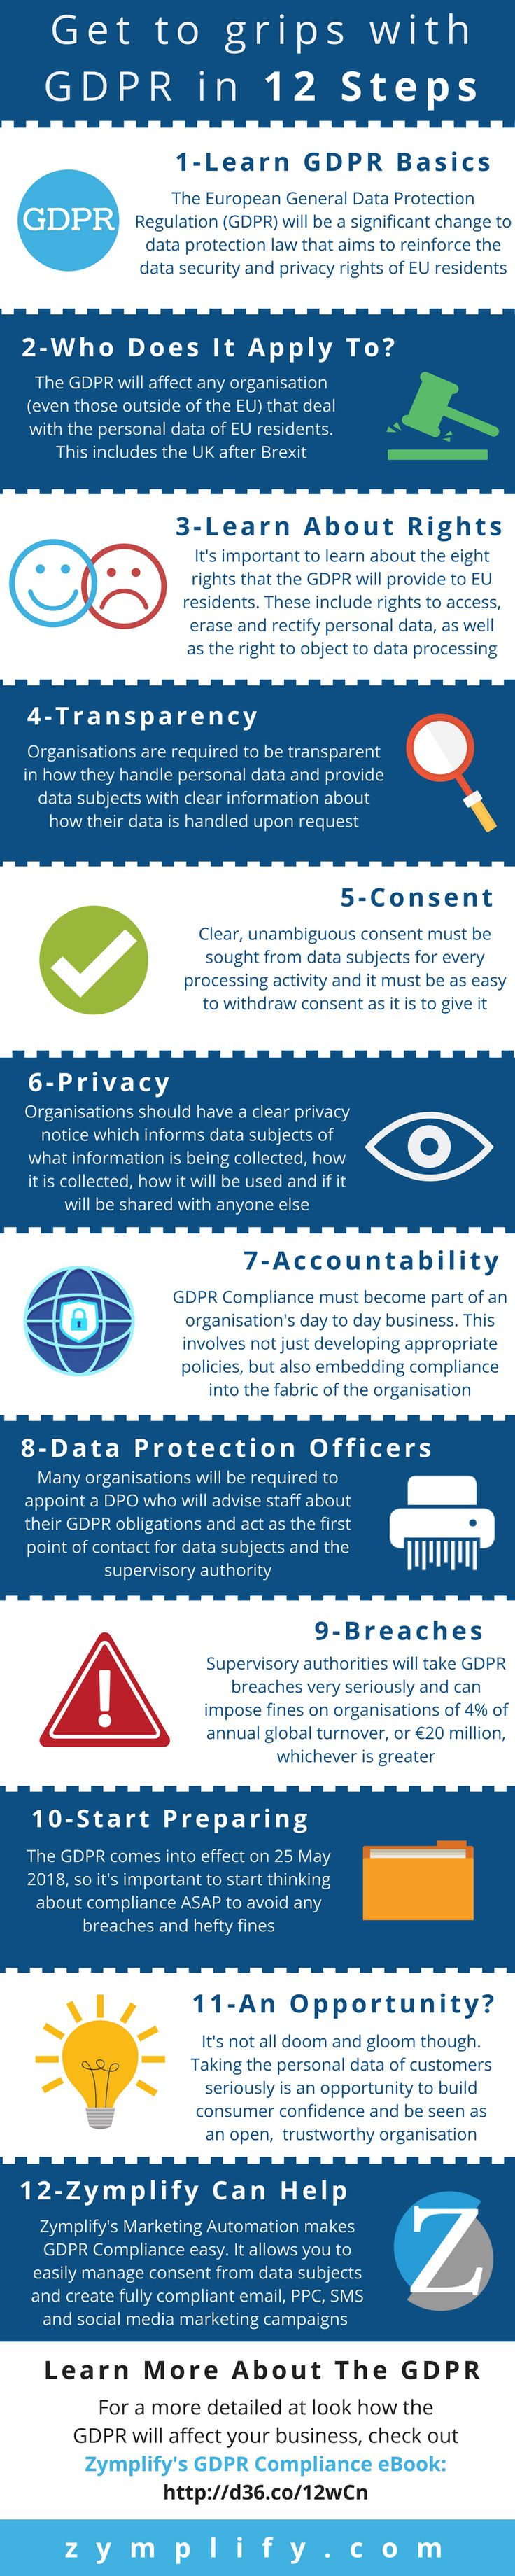 Let us help you get to grips with GDPR